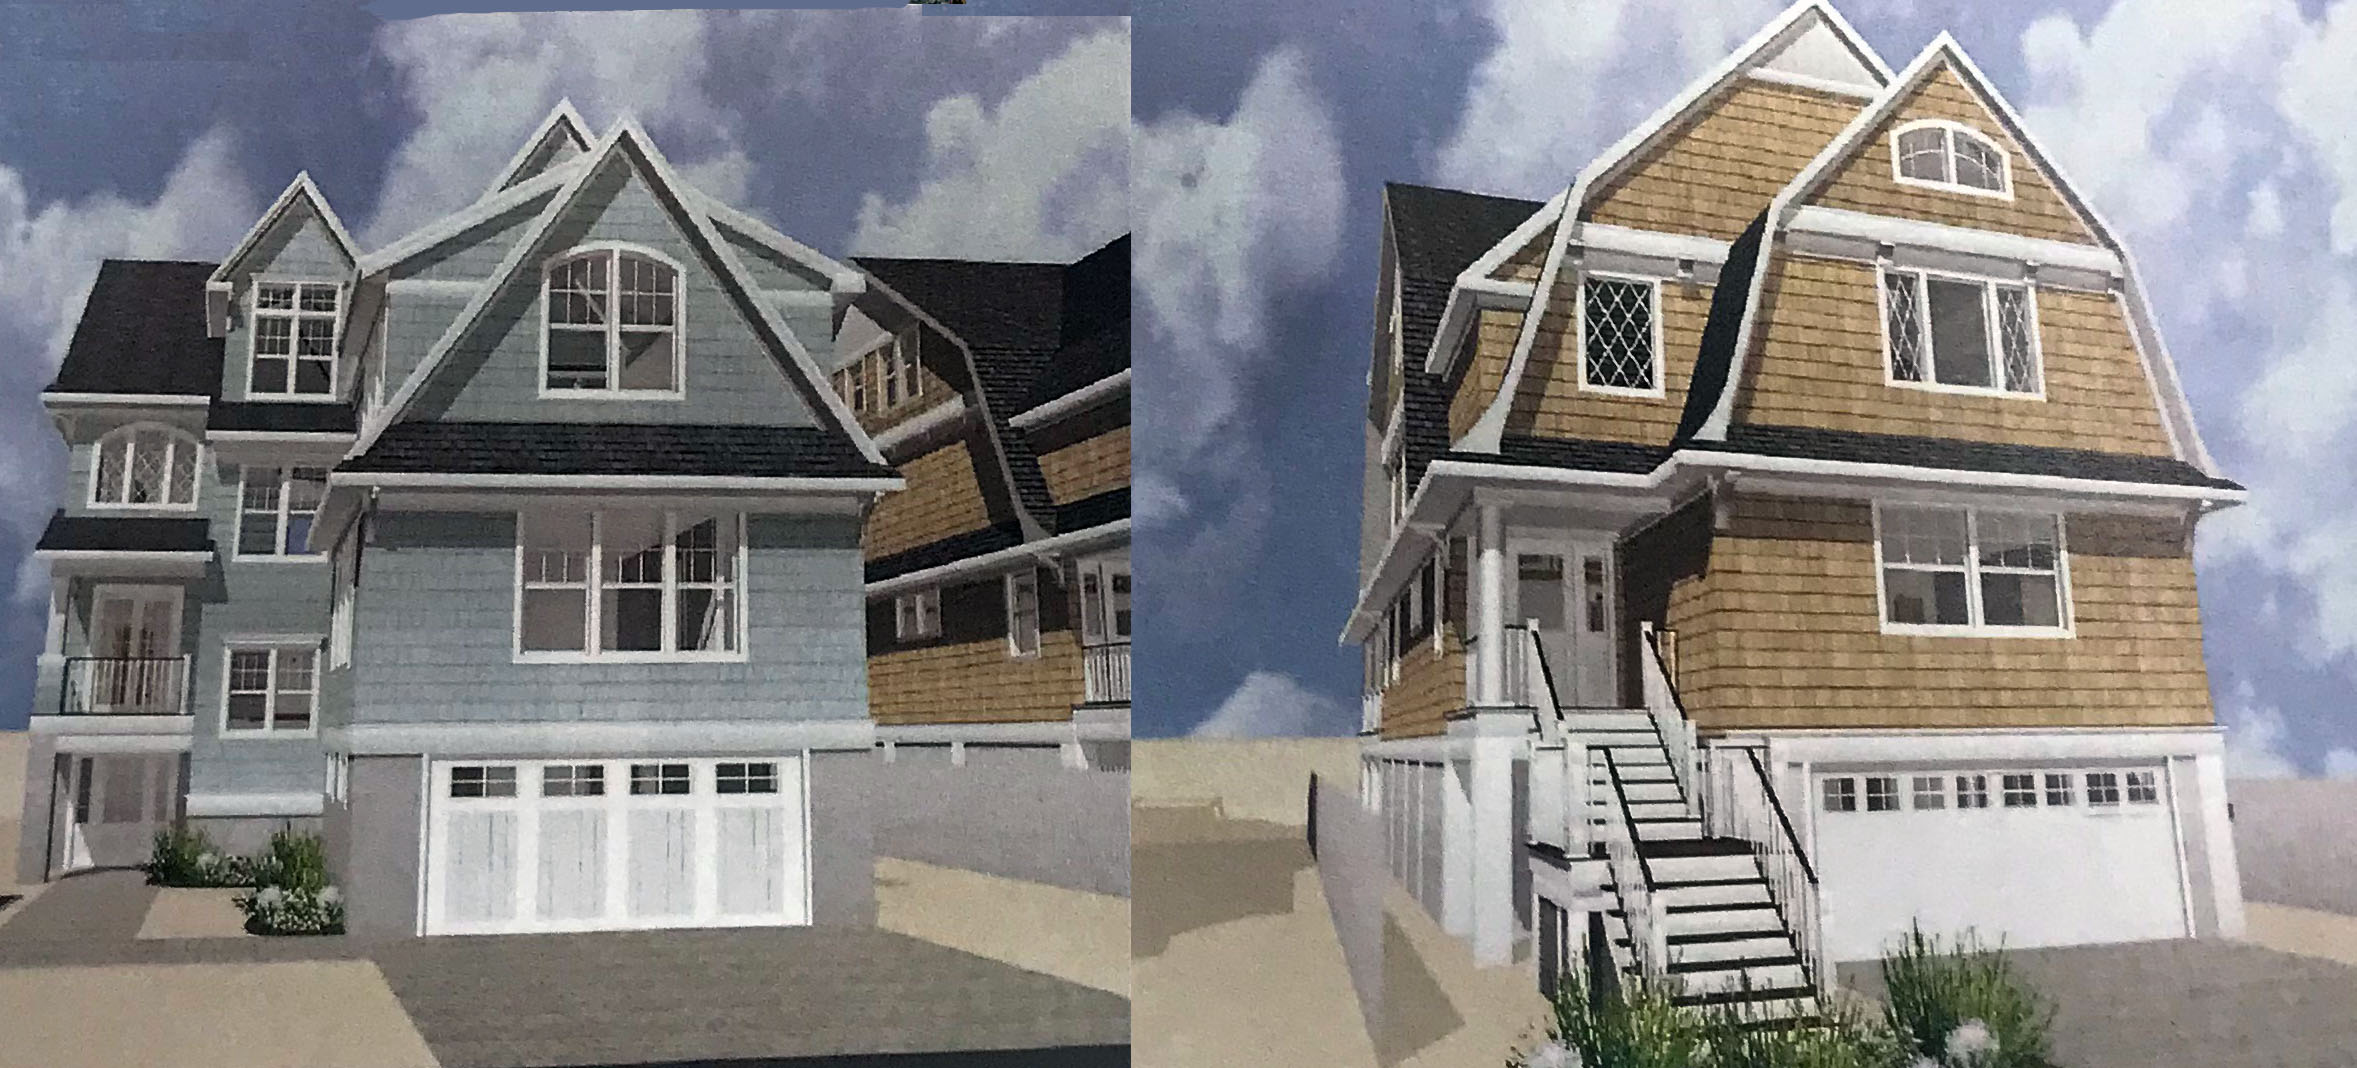 Proposed homes to be built on a portion of the Camp Osborn site in 2018. (Photo: Daniel Nee)